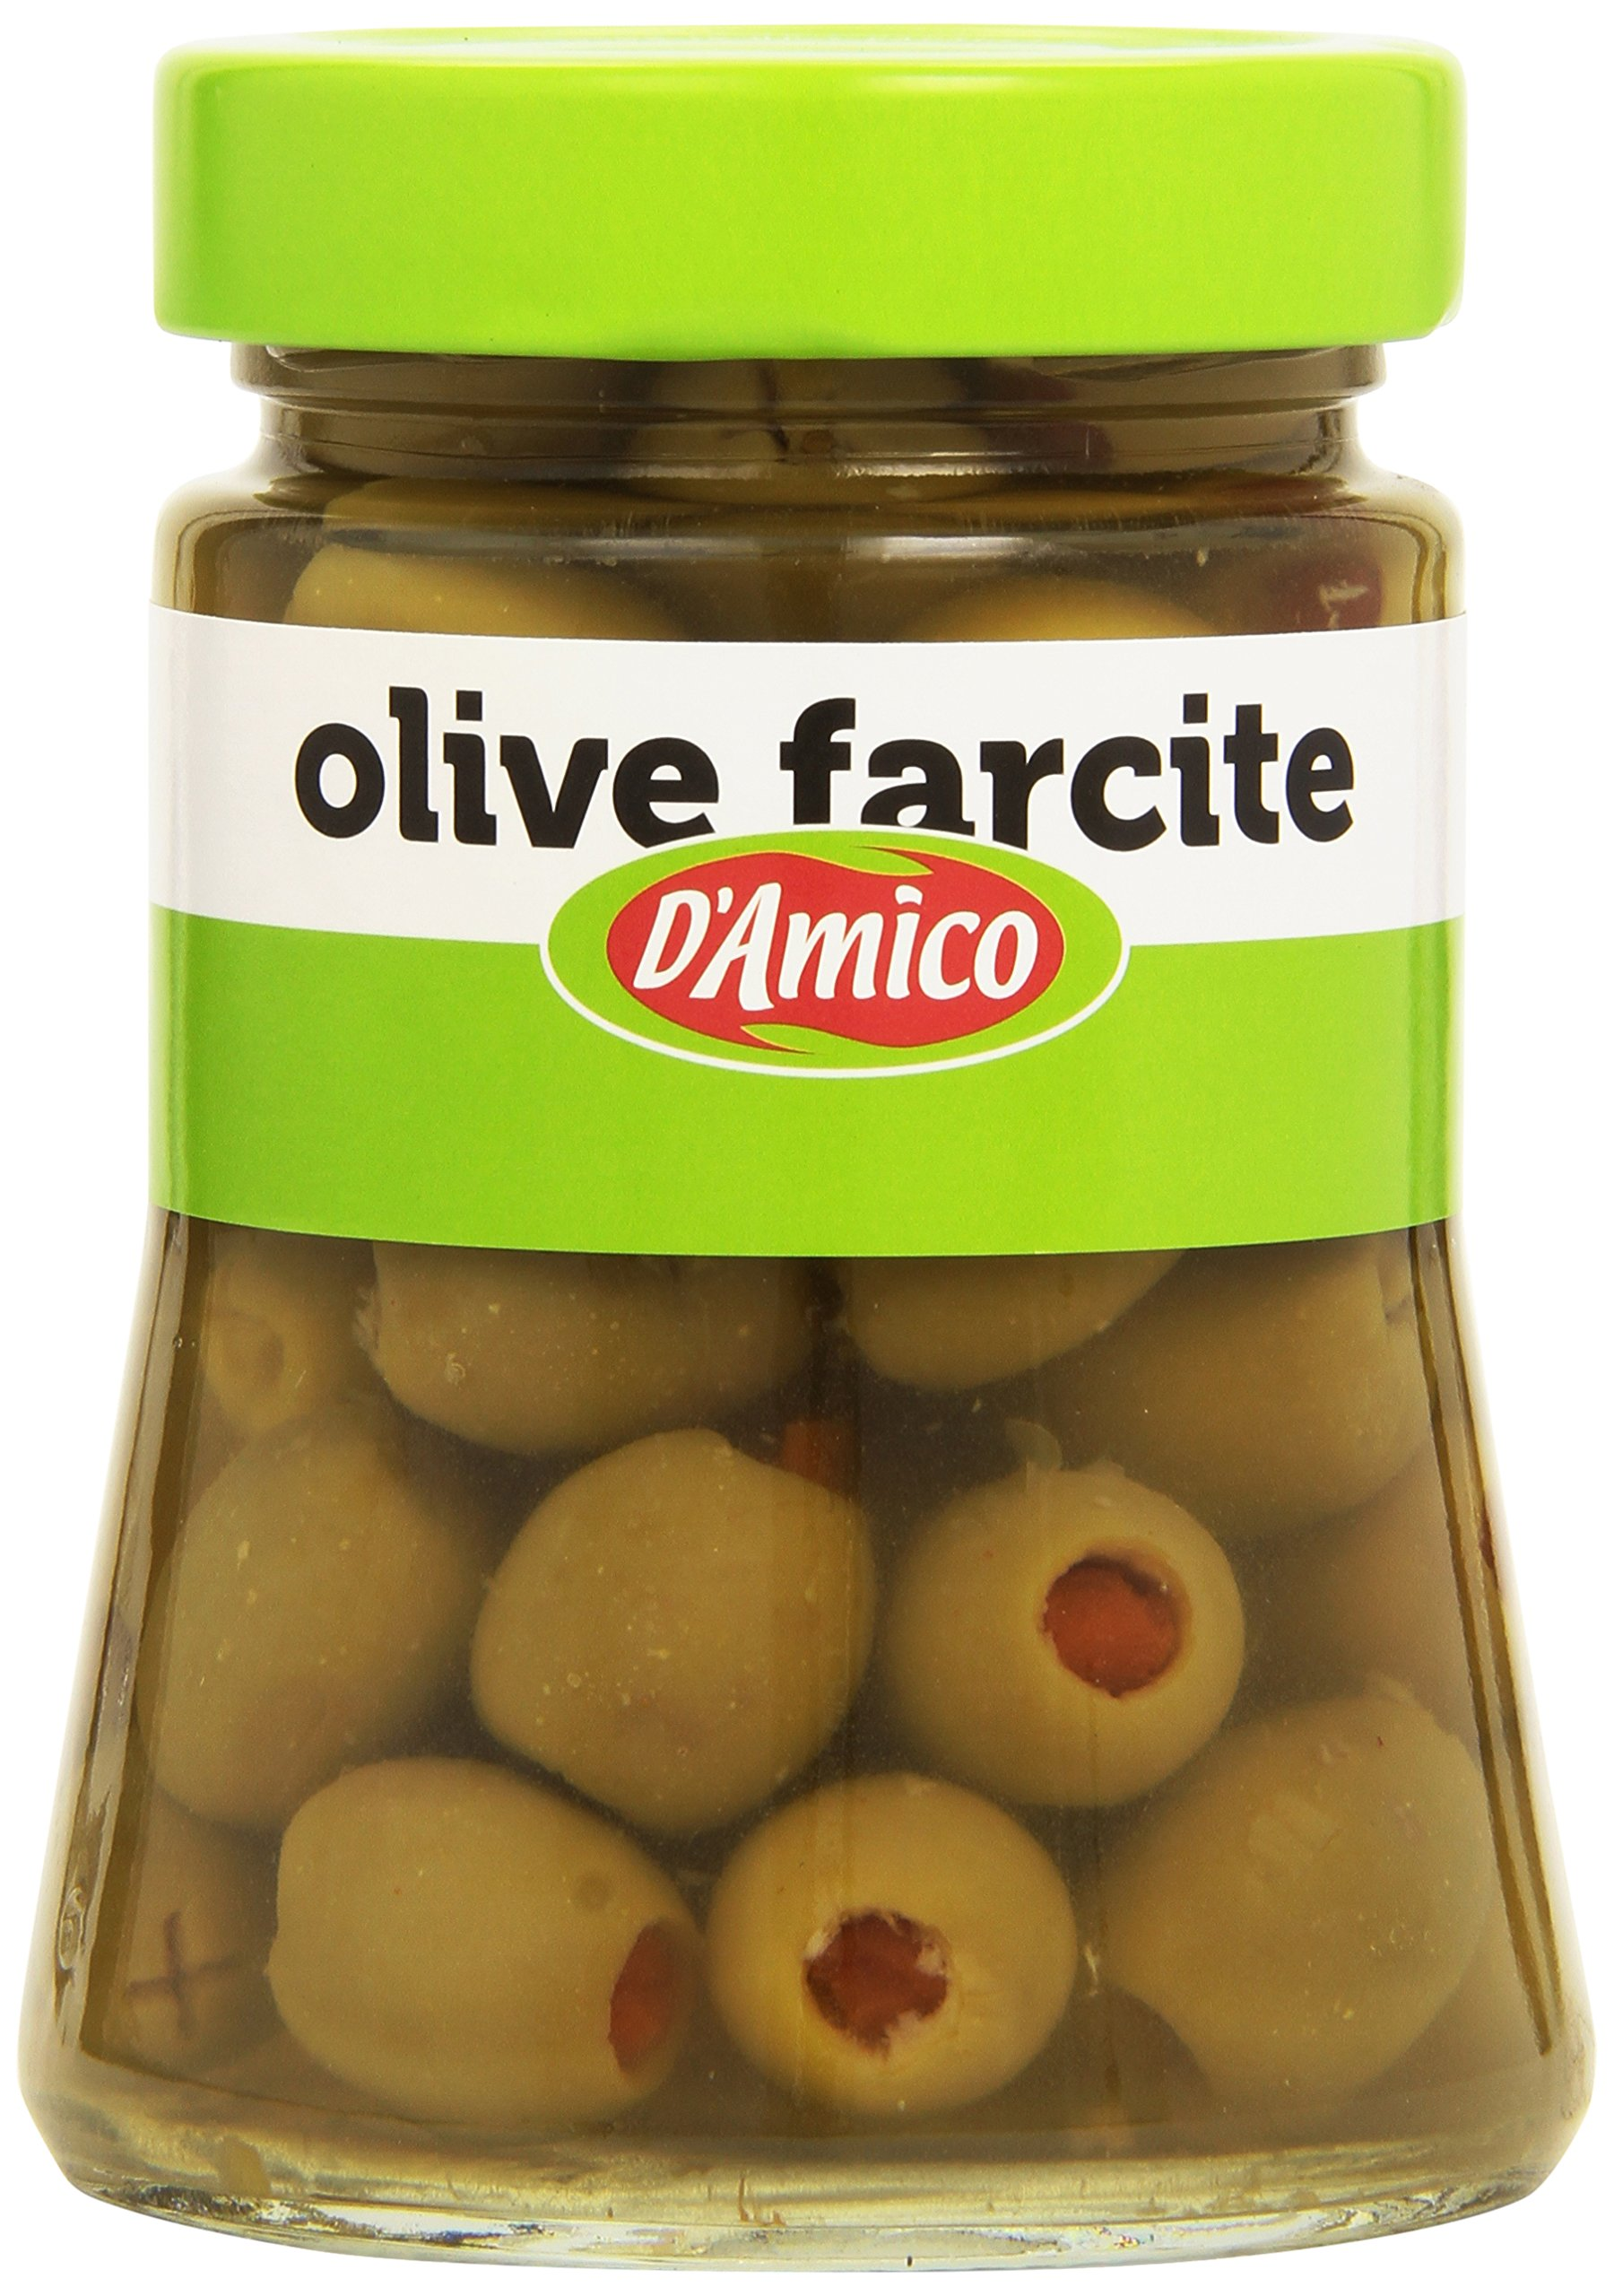 D'Amico - Olive, Farcite, 290 g